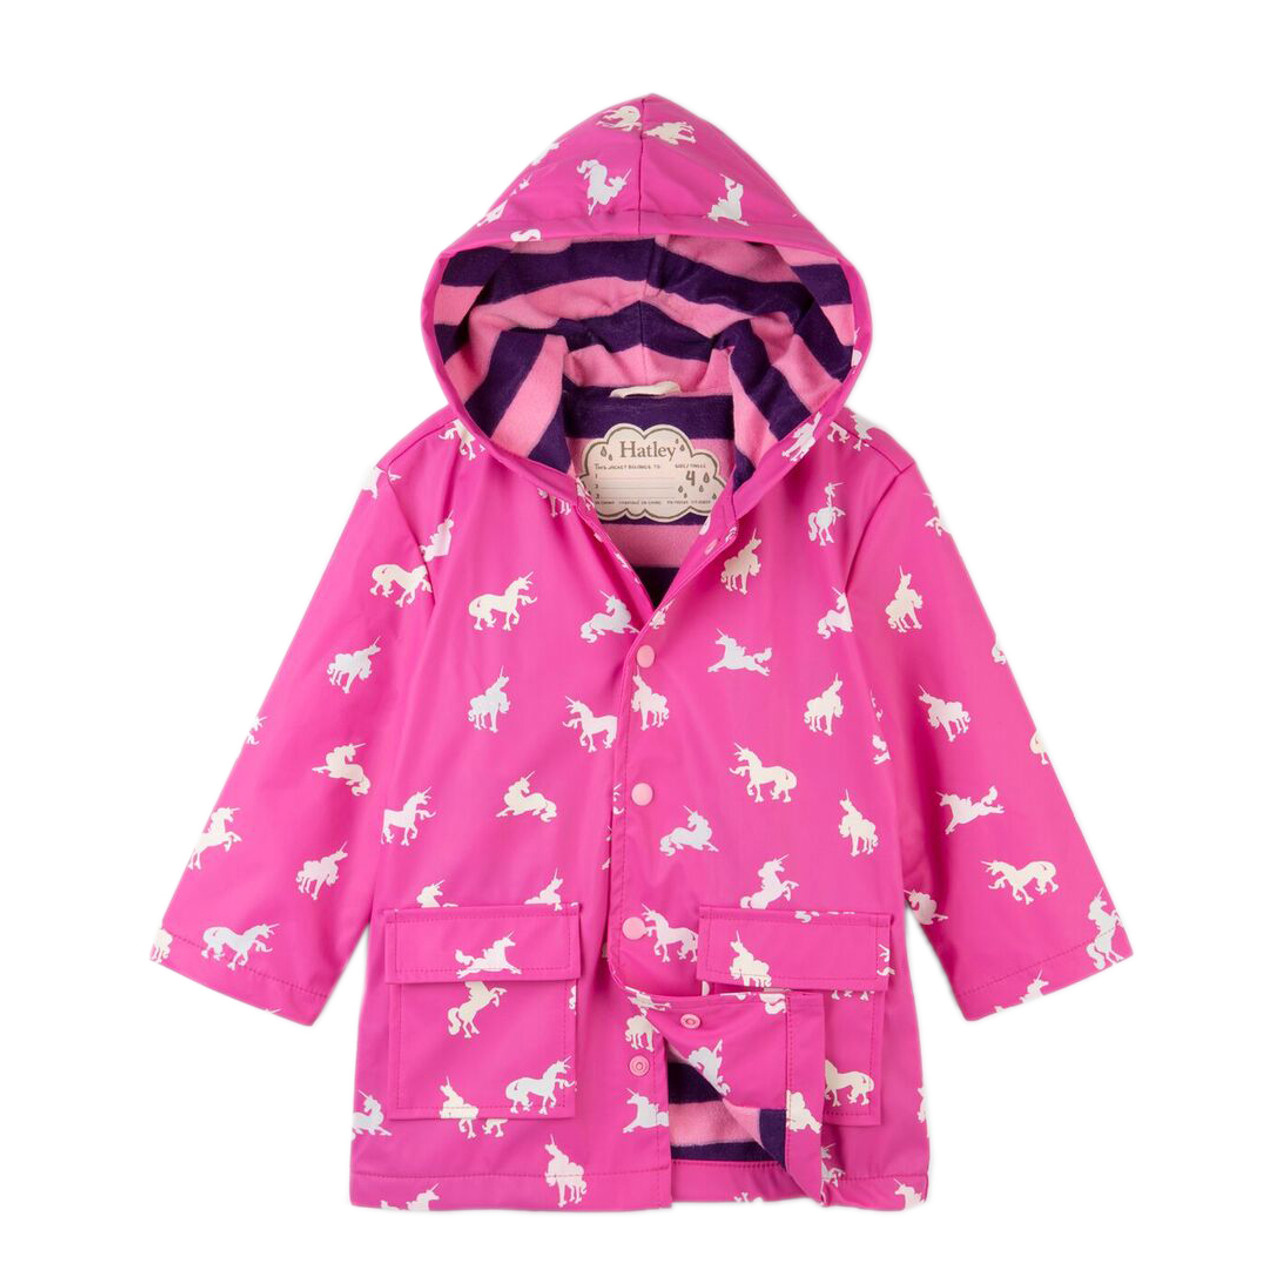 d80e3e76a22c Hatley Polka Dot Apples Classic Raincoat